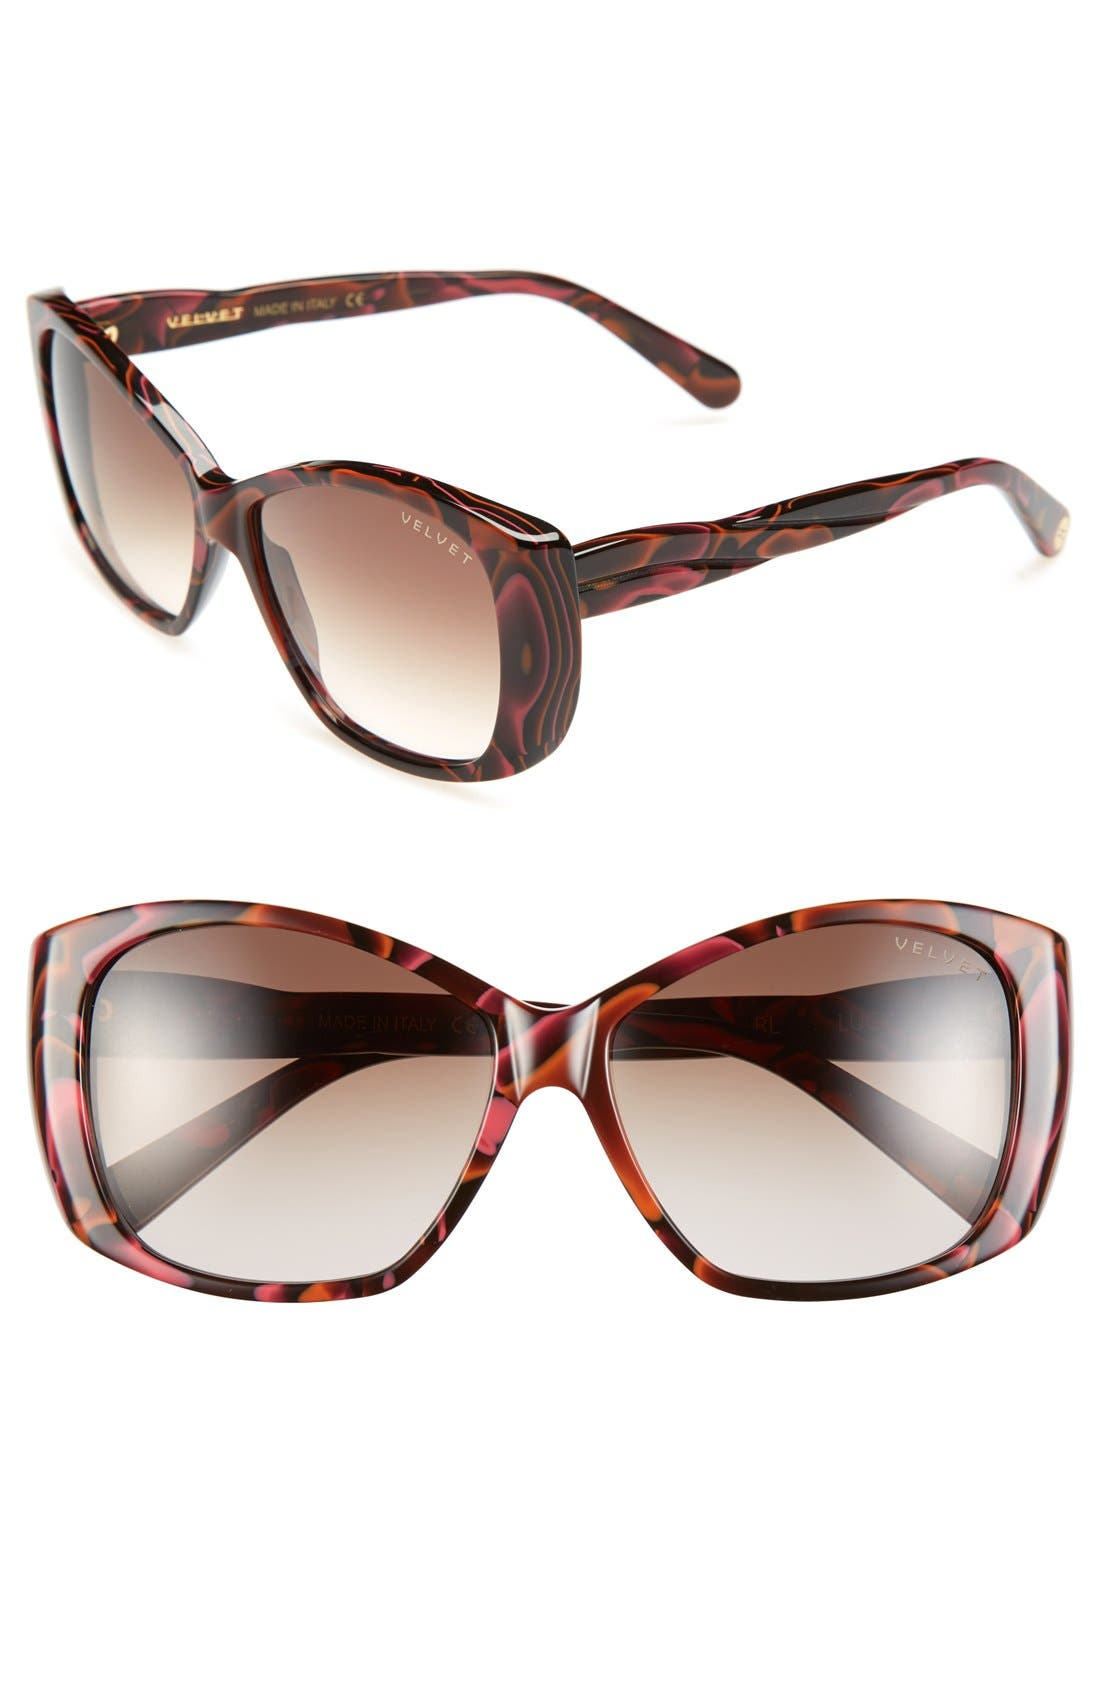 Main Image - Velvet Eyewear 'Lucy' 56mm Butterfly Sunglasses